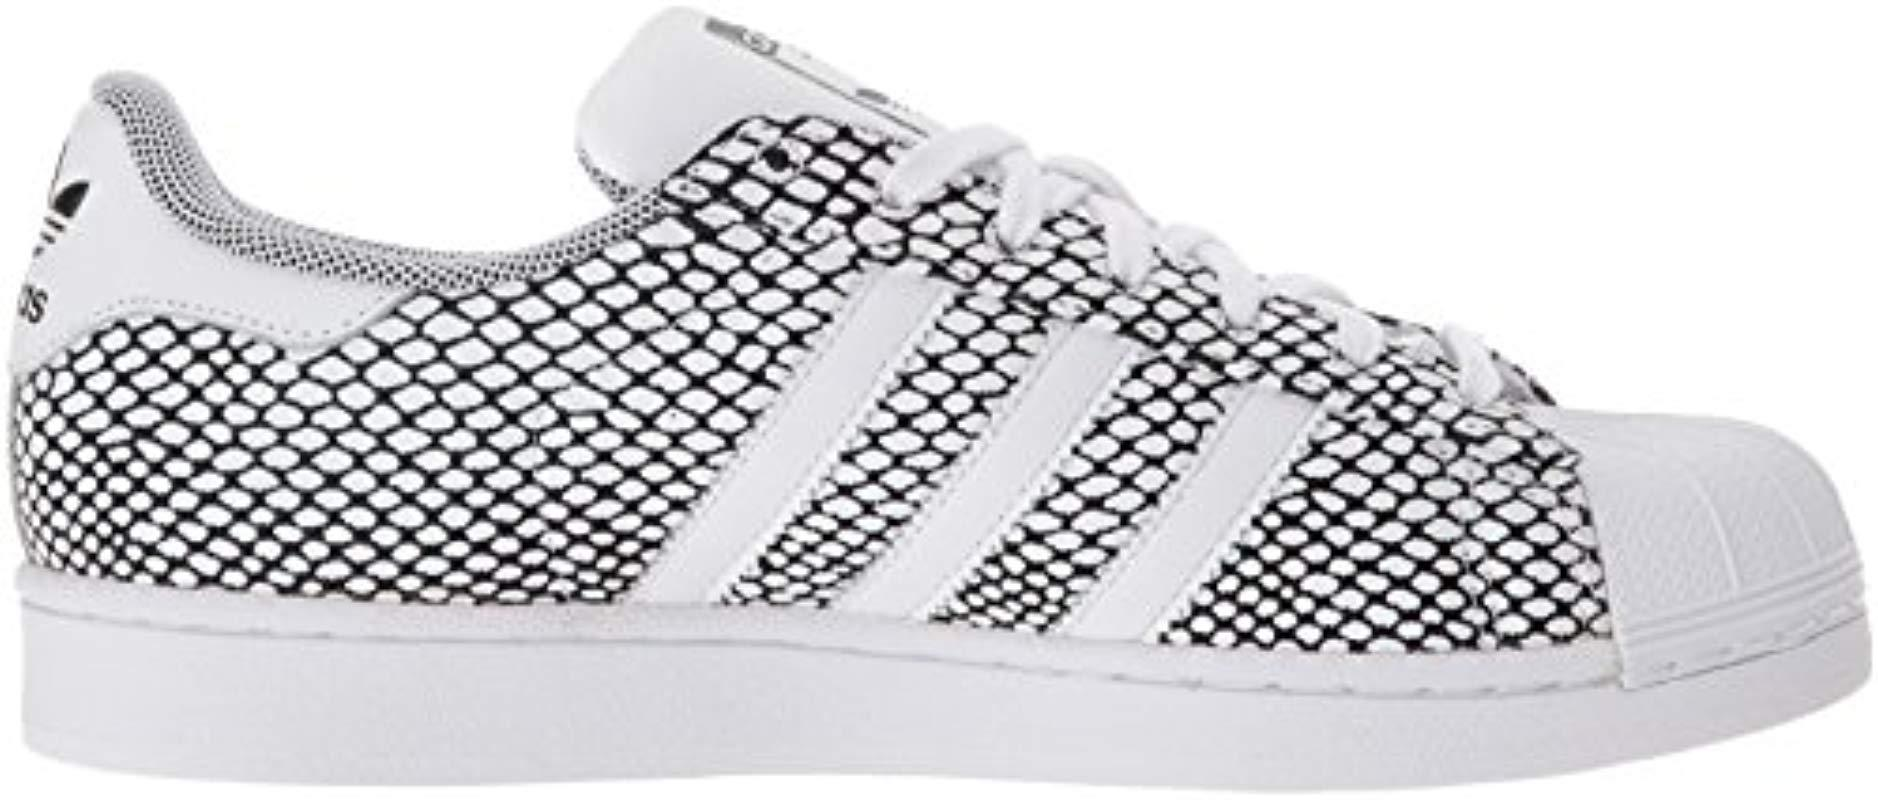 adidas Originals Leather Superstar Snake Pack Fashion Sneaker in ...